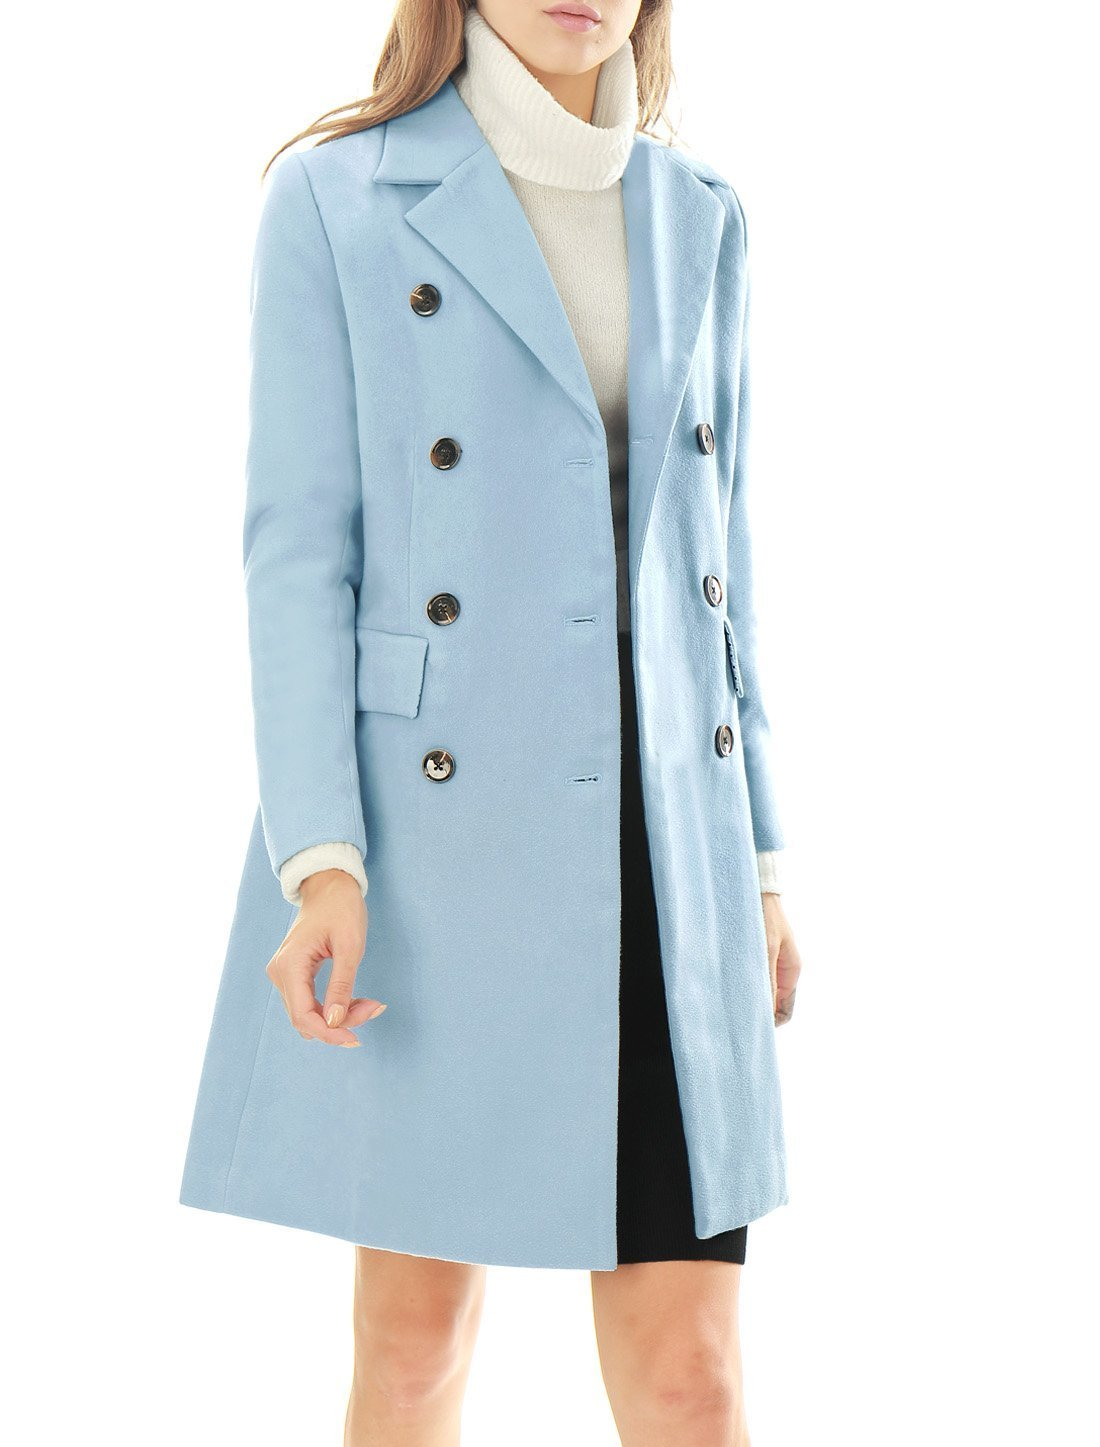 Allegra K Women's Notched Lapel Double Breasted Trench Coat XS Blue